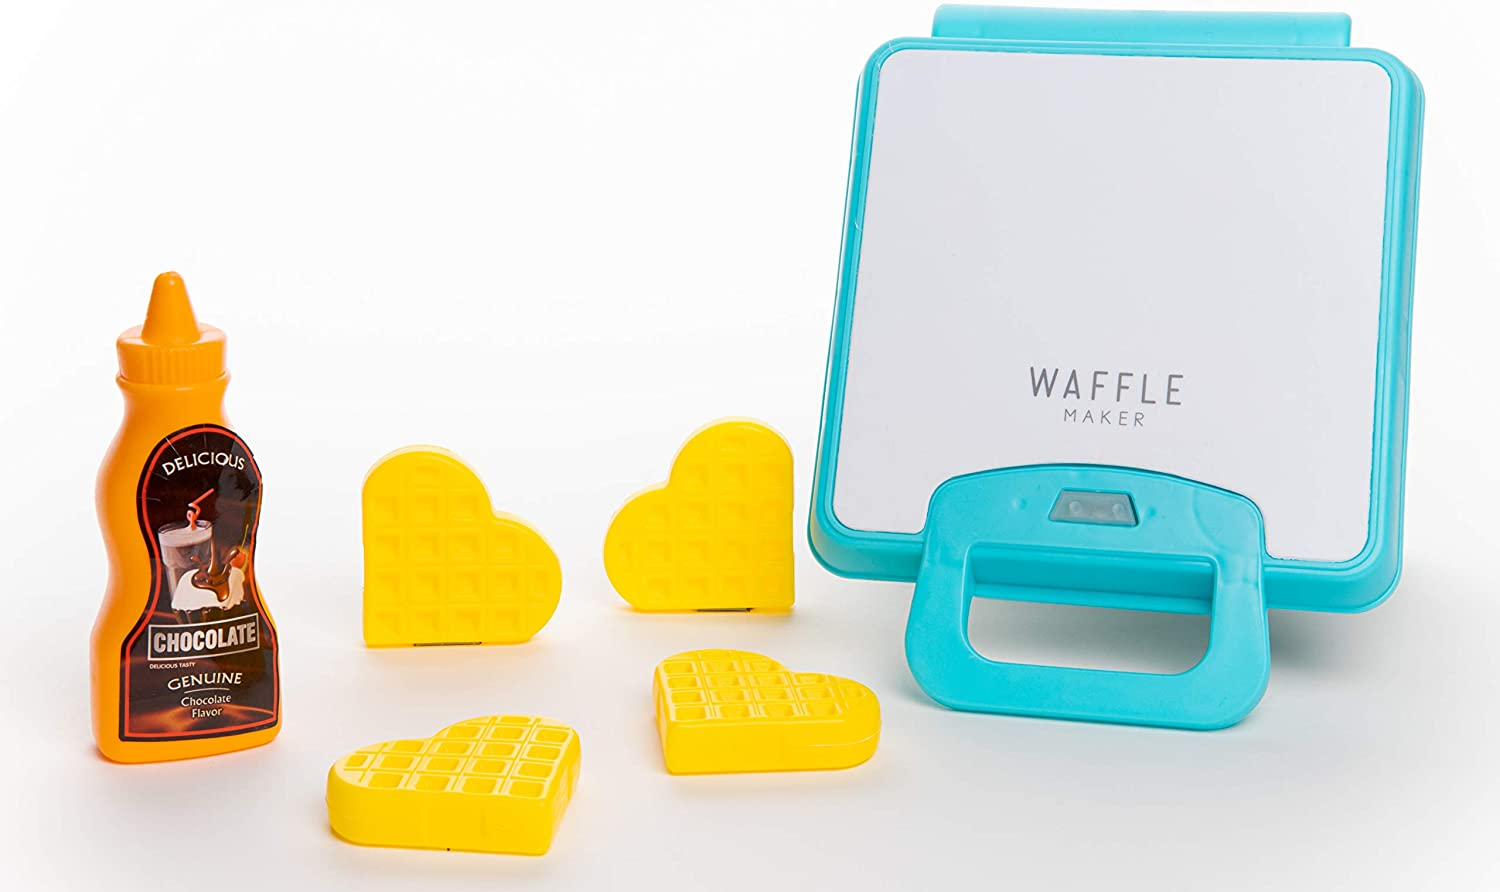 Toy Chef Toy Waffle Maker – Toy Kitchen Products for Kids – Interactive Pancake Game – Educational Waffle Maker Set for Boy and Girls – 6 Pieces Toy Waffle Maker Set with Syrup and Waffles